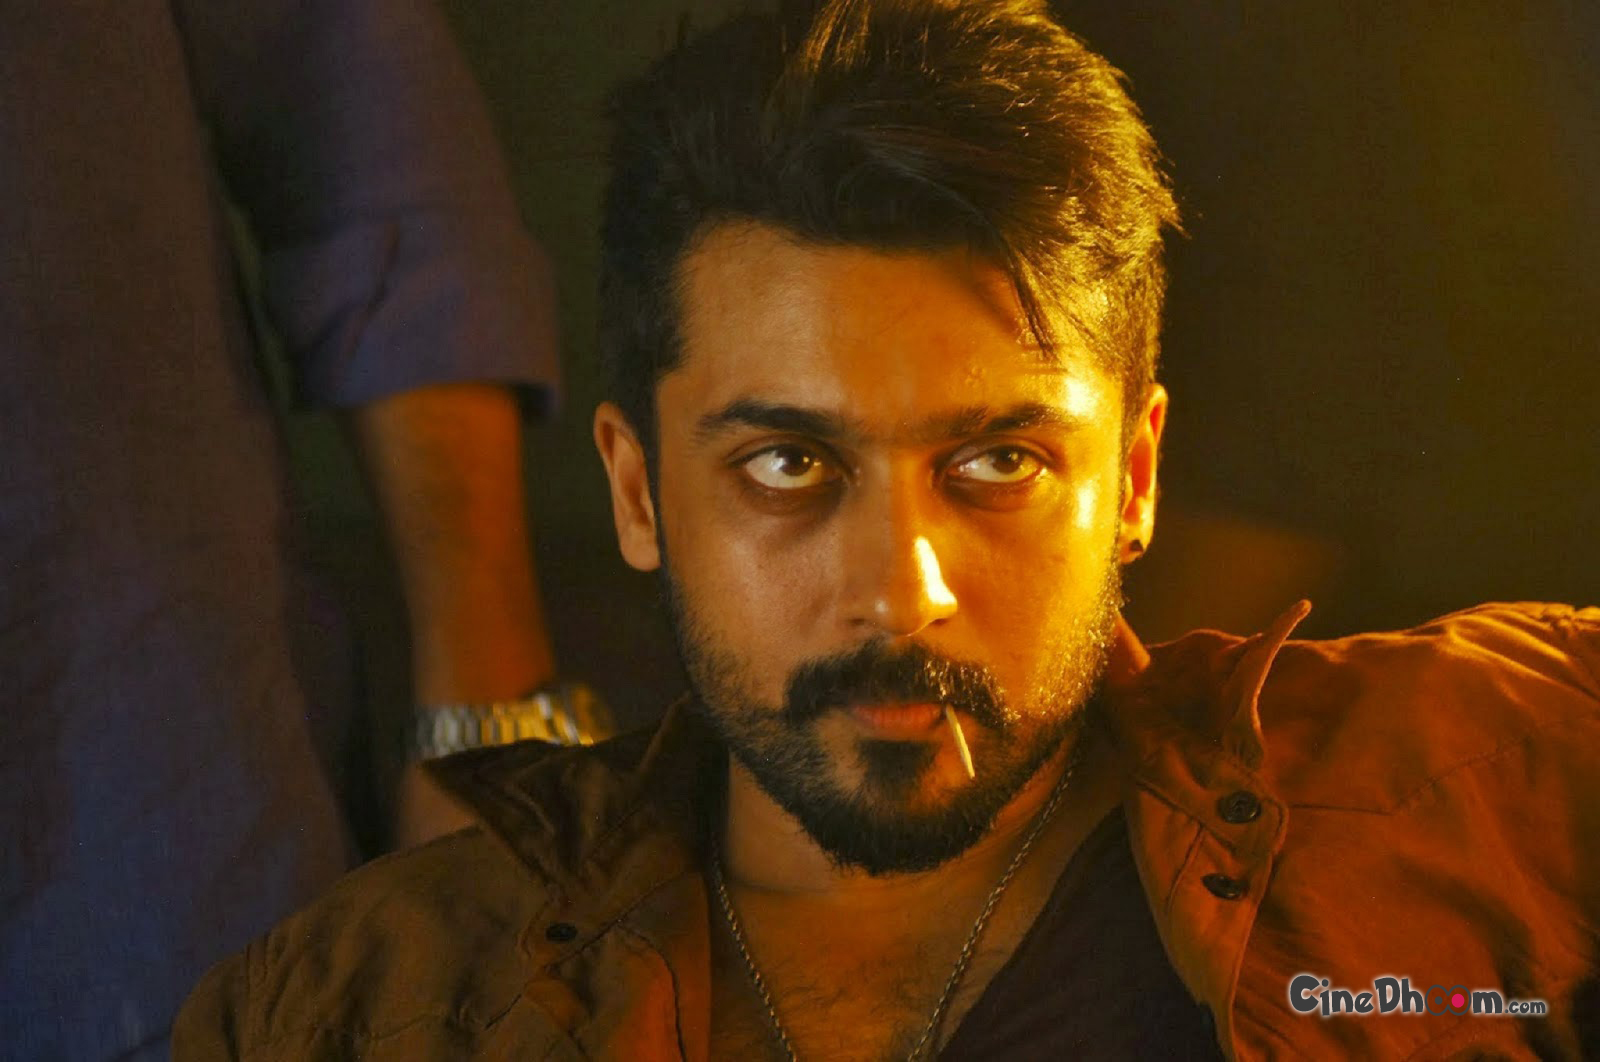 All About Surya Only About Surya: Surya Hd Wallpaper 2015